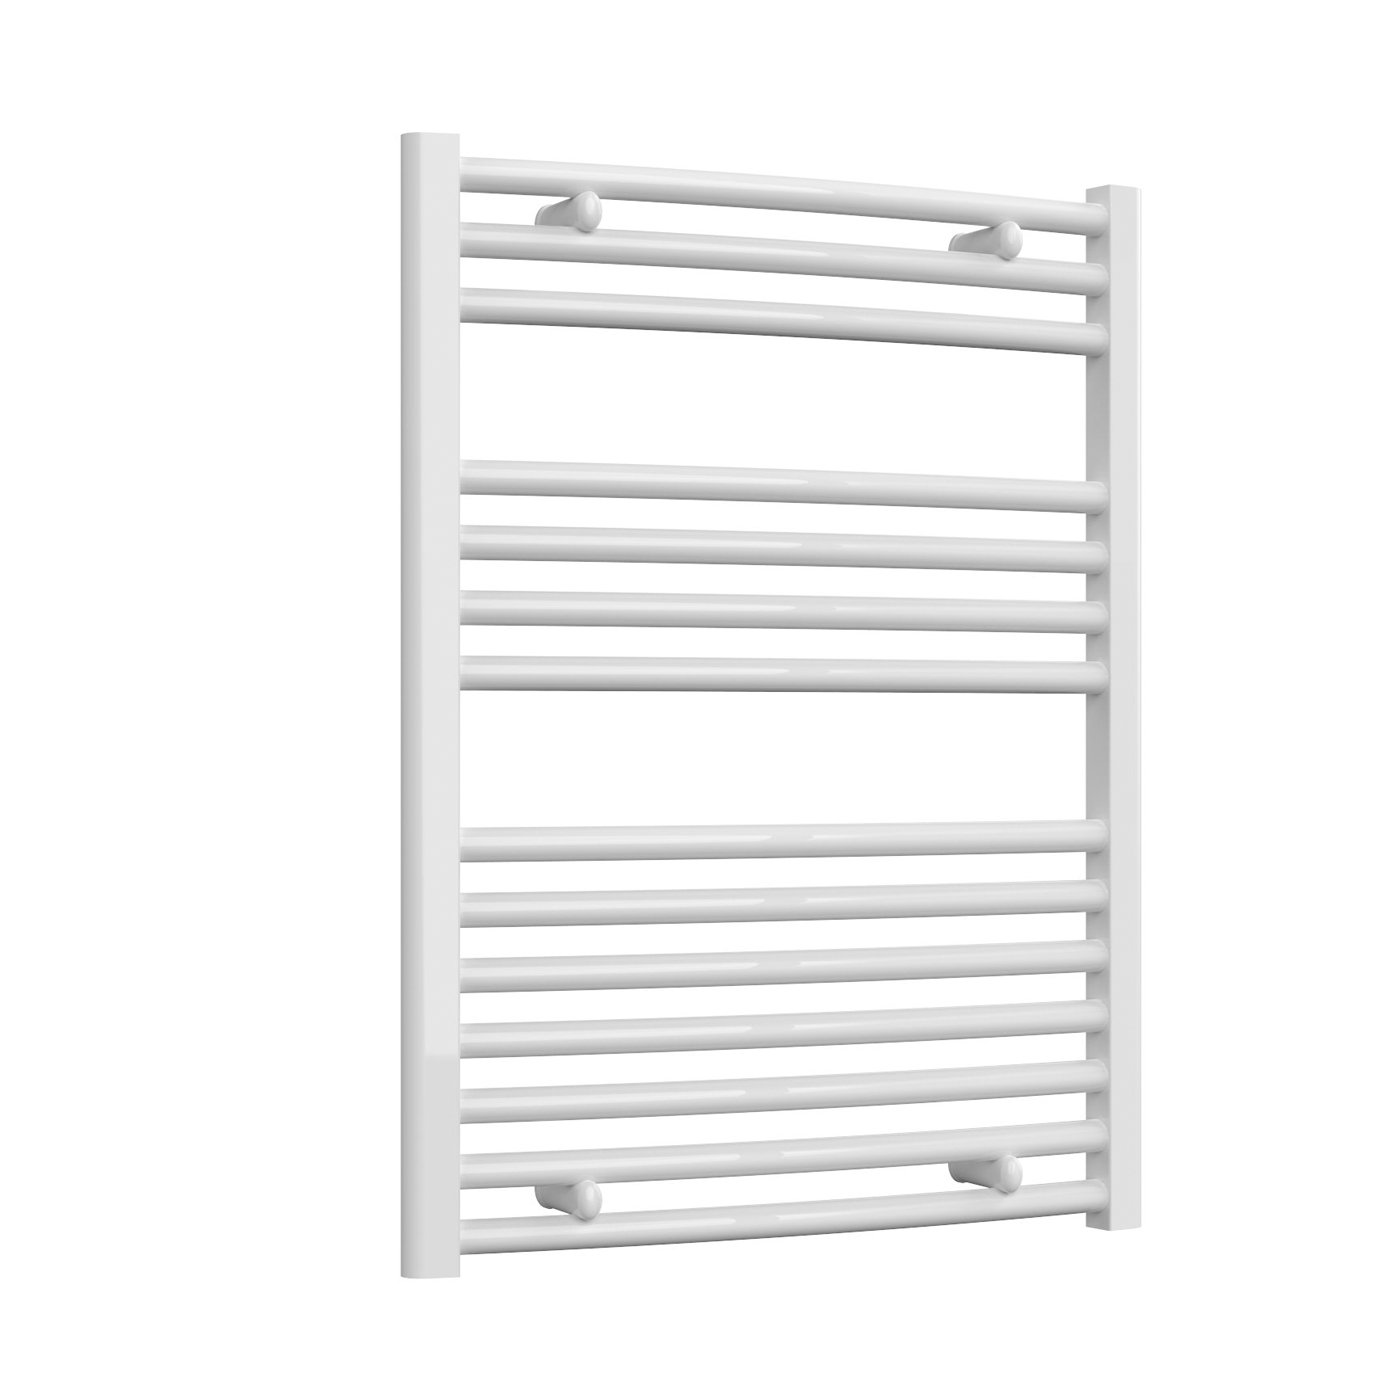 Reina Diva Curved Heated Towel Rail 800mm H x 600mm W White-0